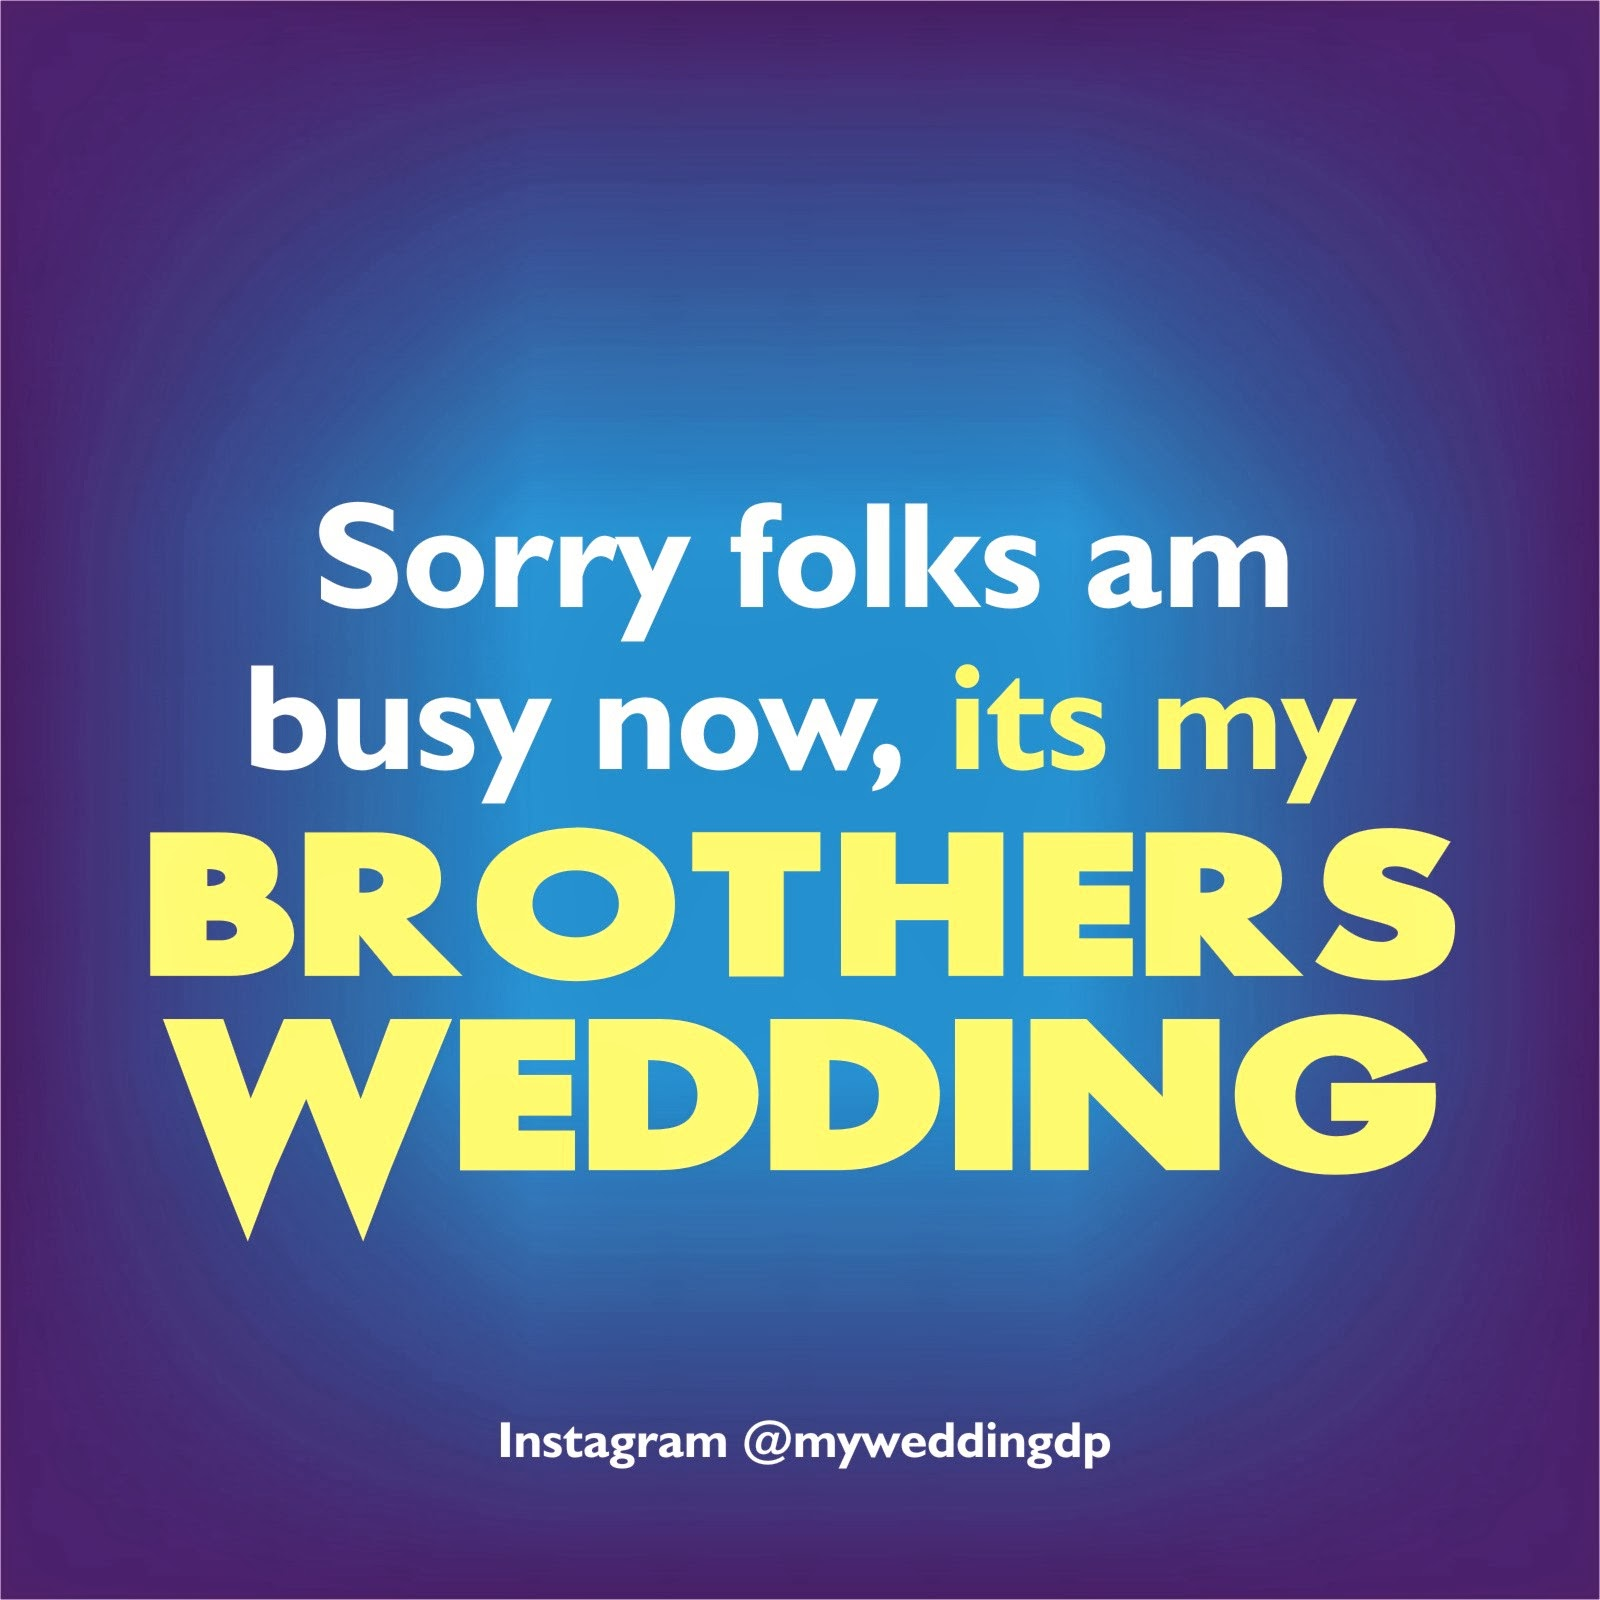 Busy with my brothers wedding wedding dps quotes am the brides brother altavistaventures Image collections